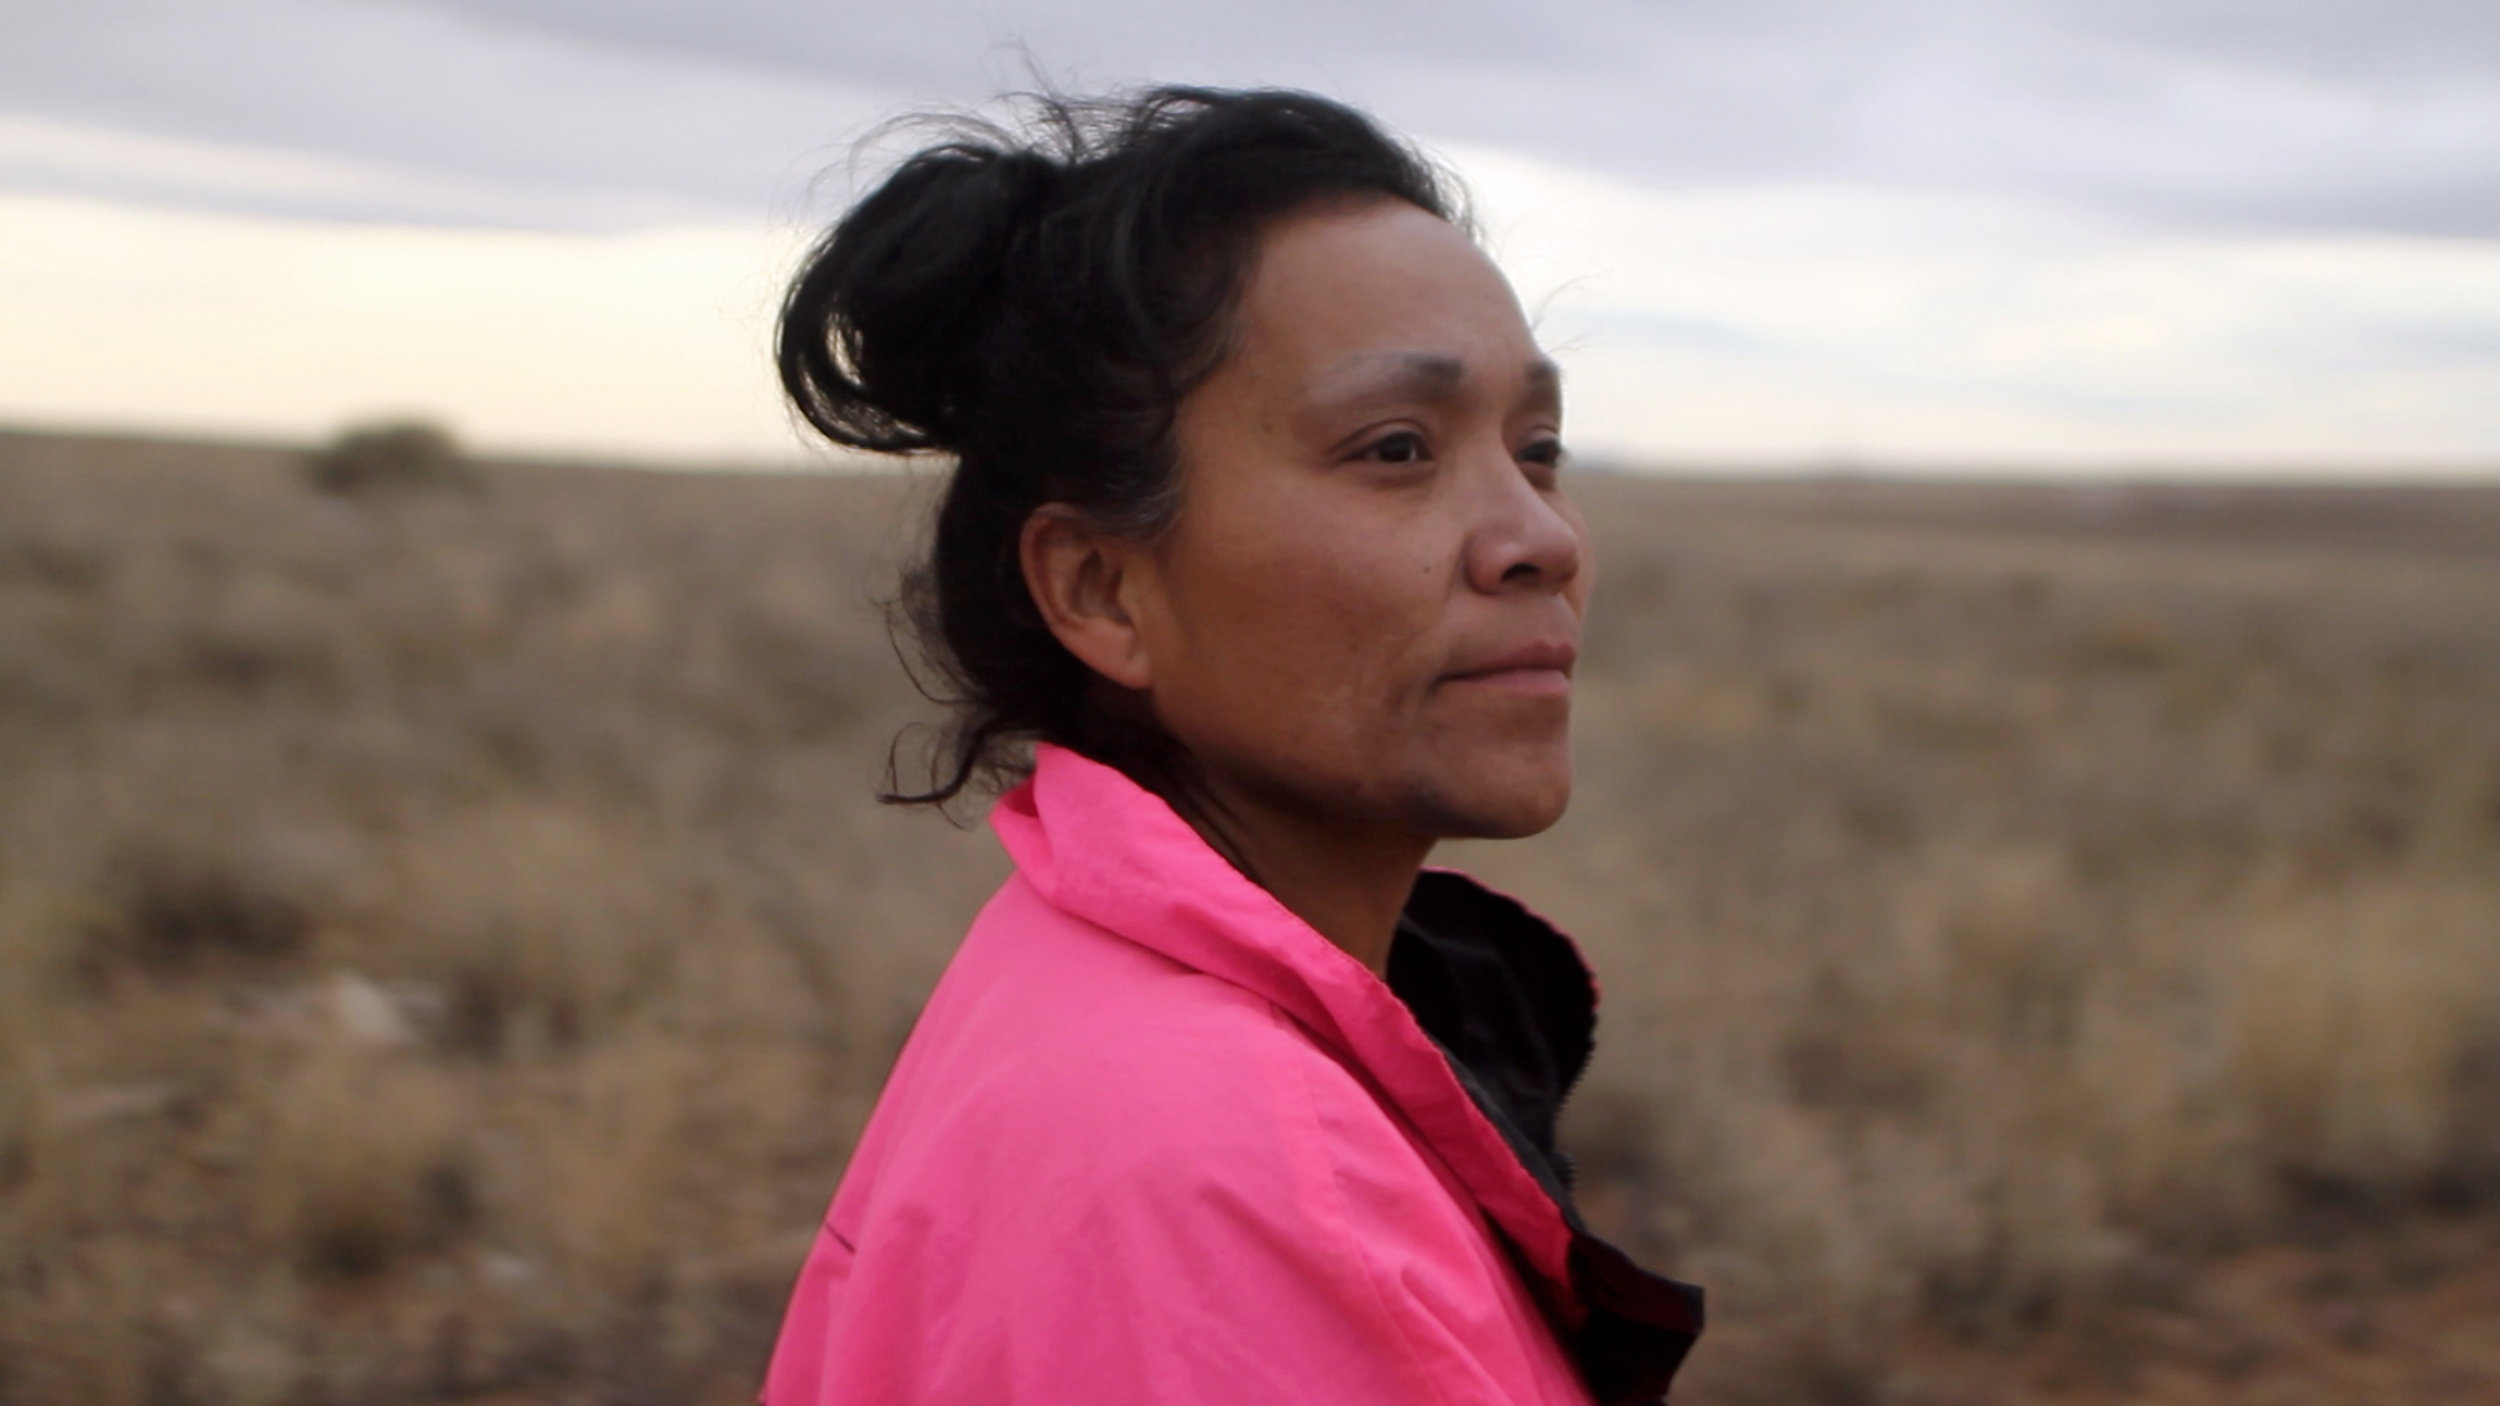 VANESSA  grew up herding sheep on the Navajo Nation and joined the Navy to build a better future. Alongside her boyfriend and their son, she combs the desert for scrap metal to recycle for cash.